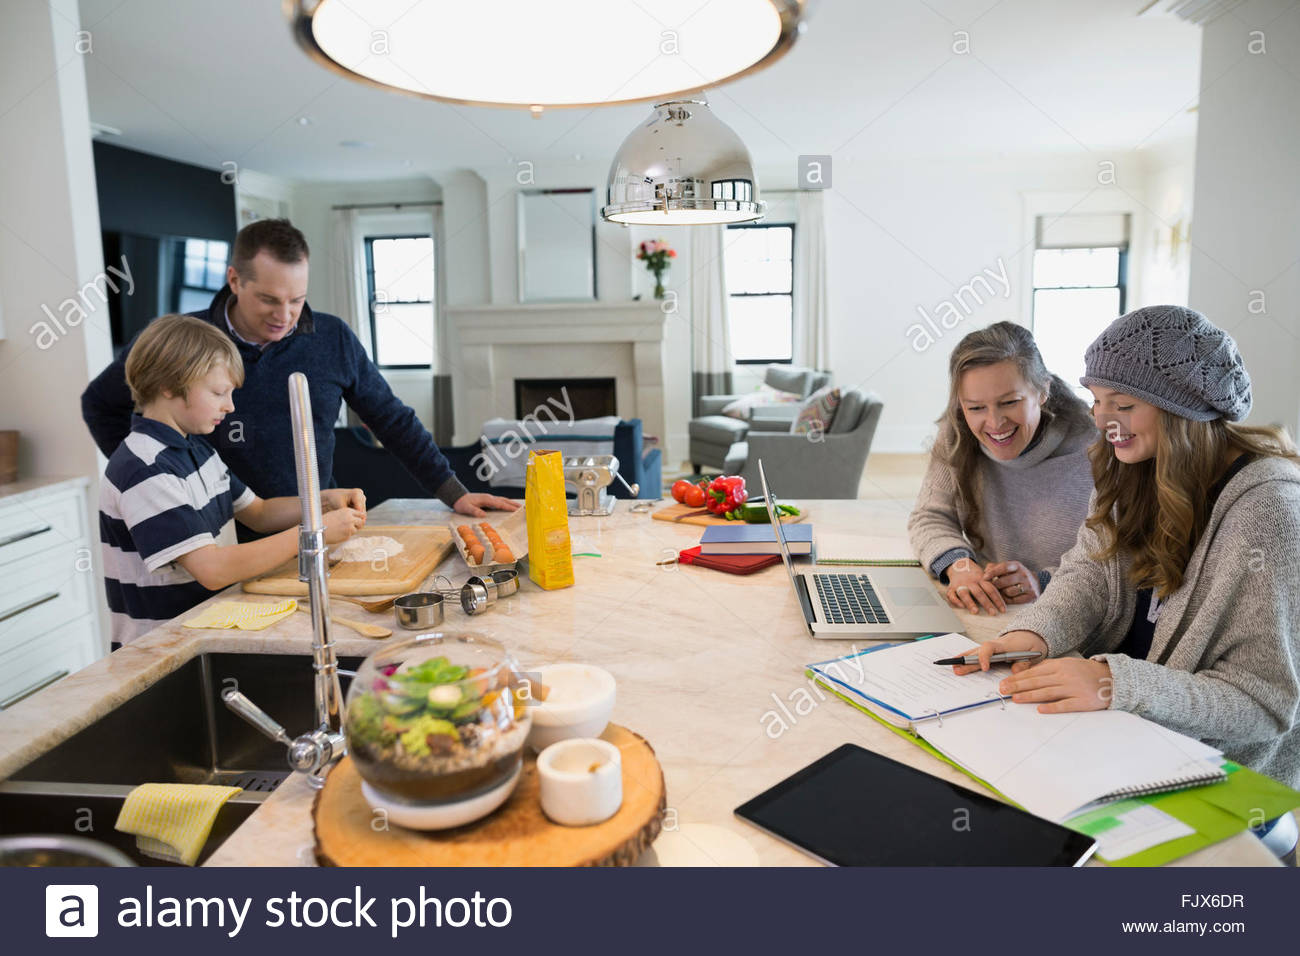 Family baking and doing homework at kitchen island - Stock Image